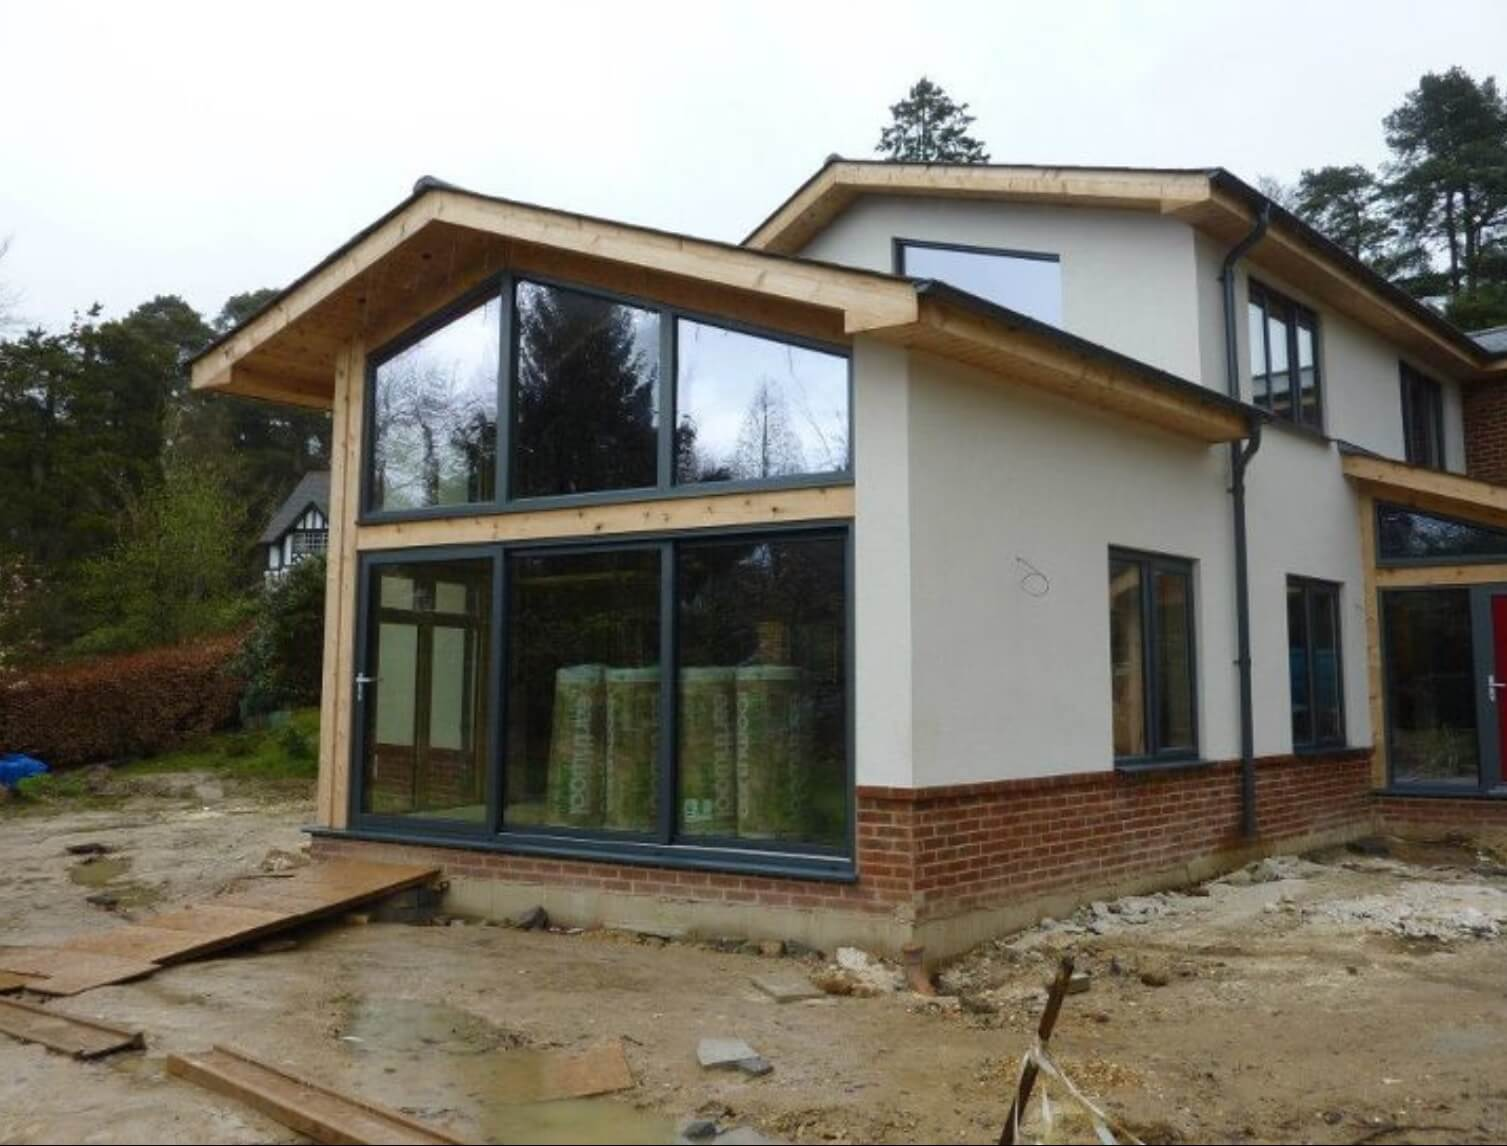 Poundgate 4 bedroom house design solo timber frame for How to build a timber frame house